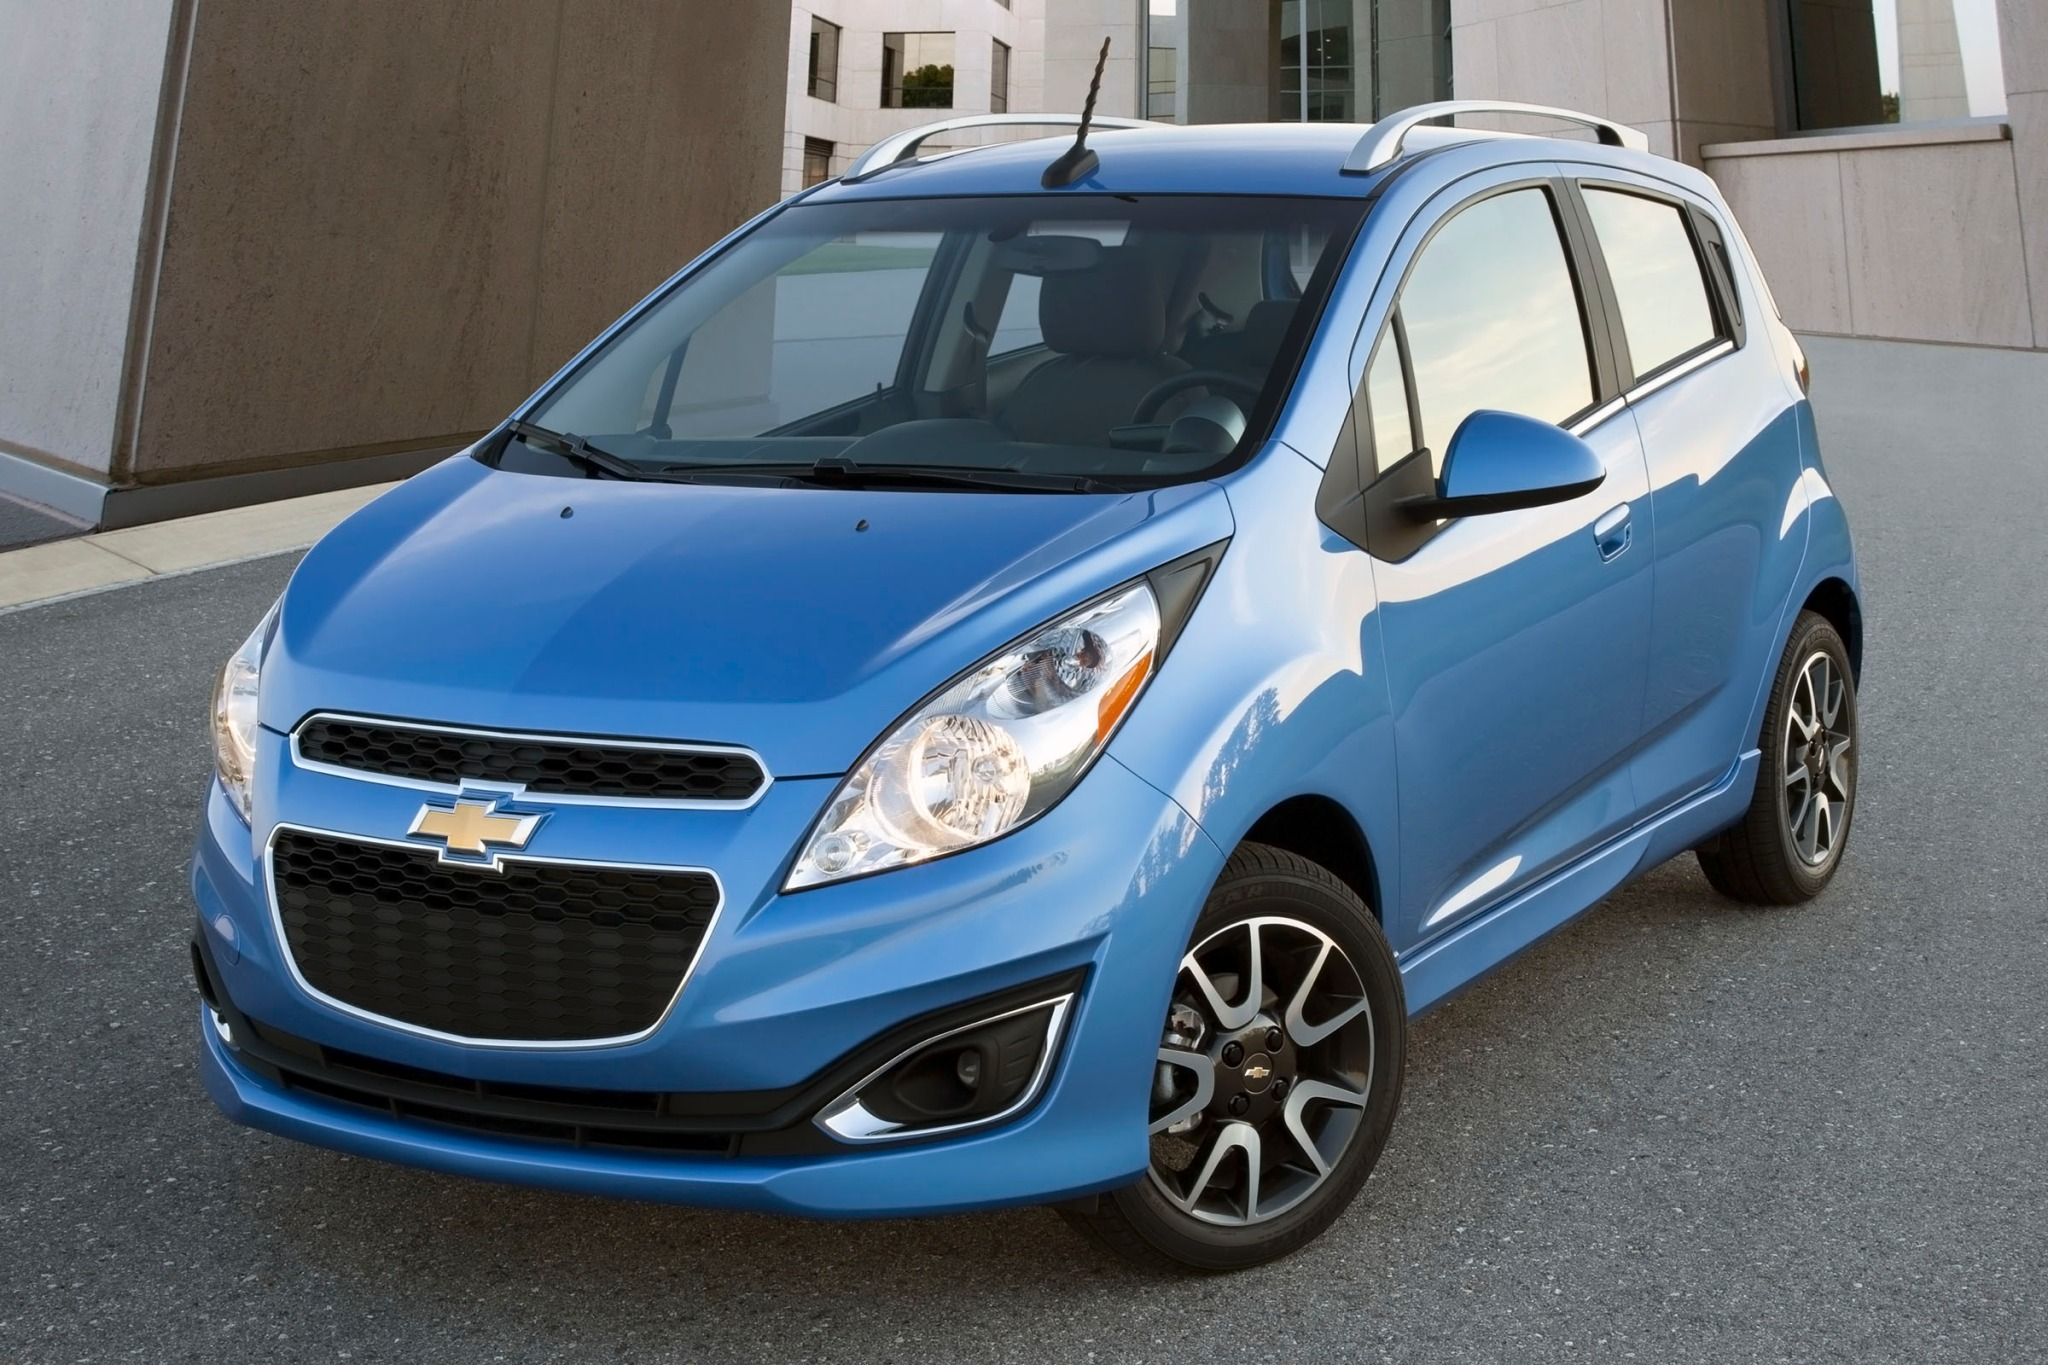 2015 Chevrolet Spark Ls Manual Vin Number Search